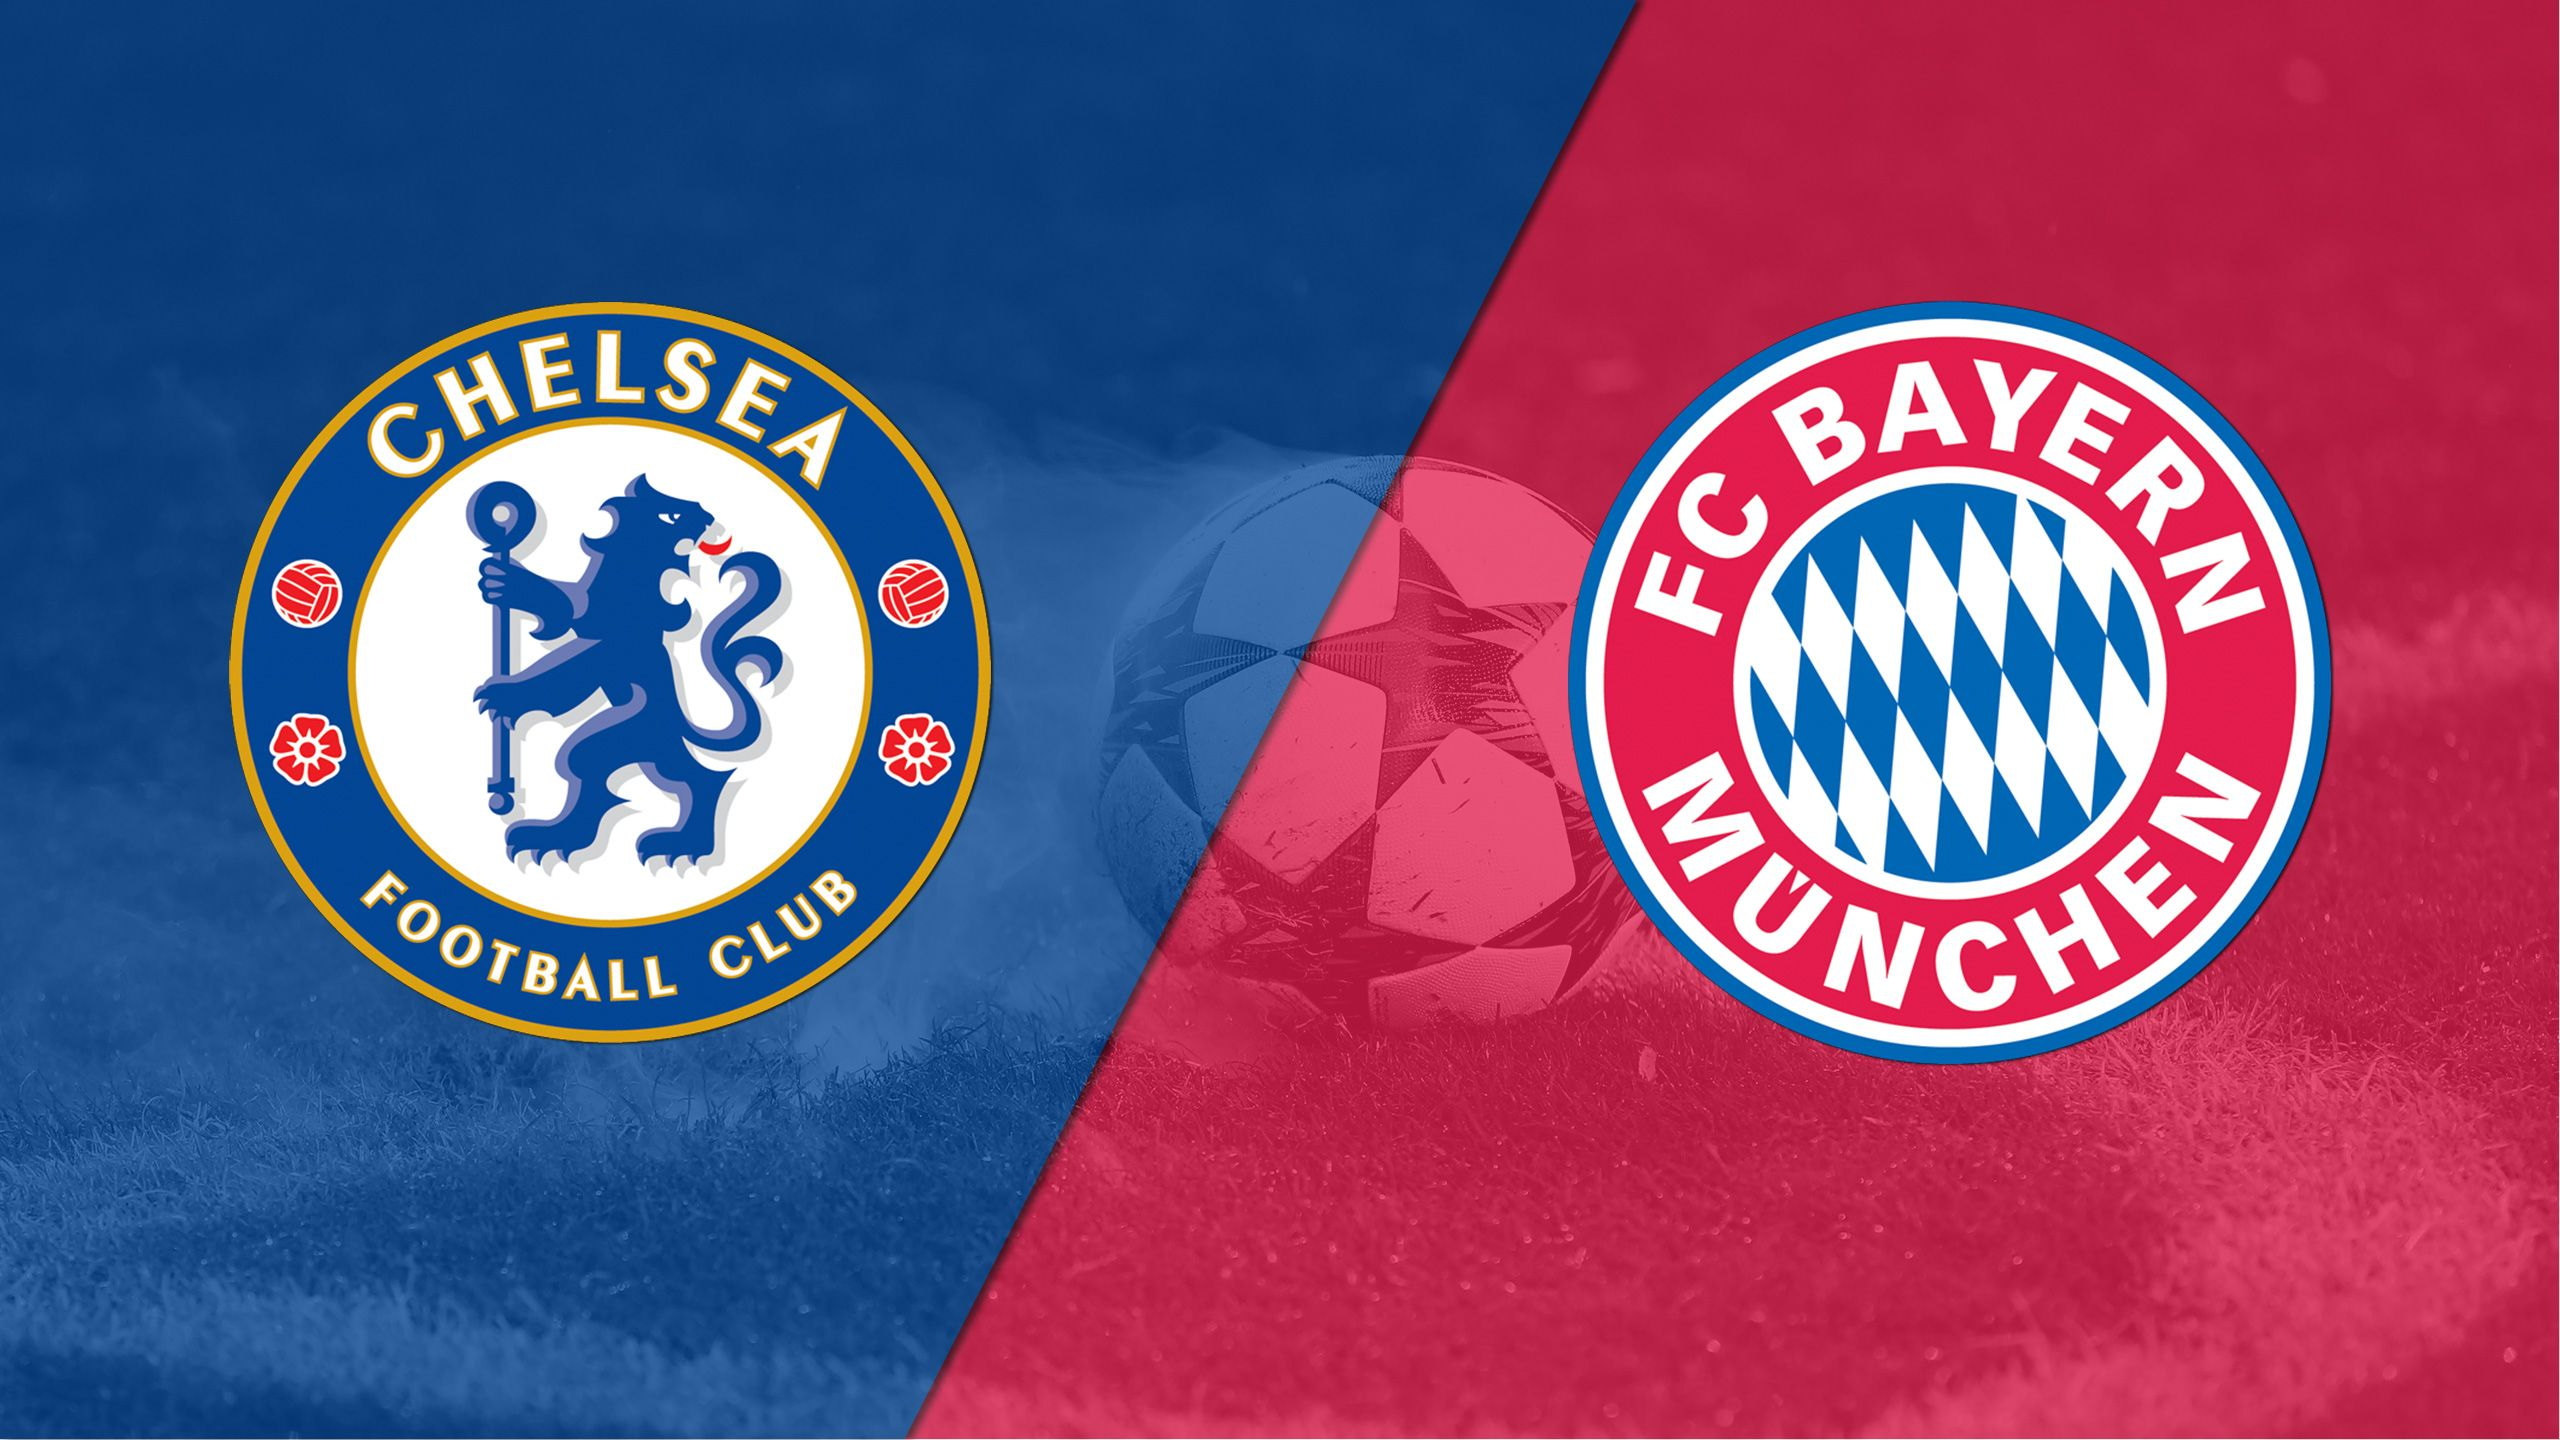 Chelsea vs. Bayern Munich (International Champions Cup)